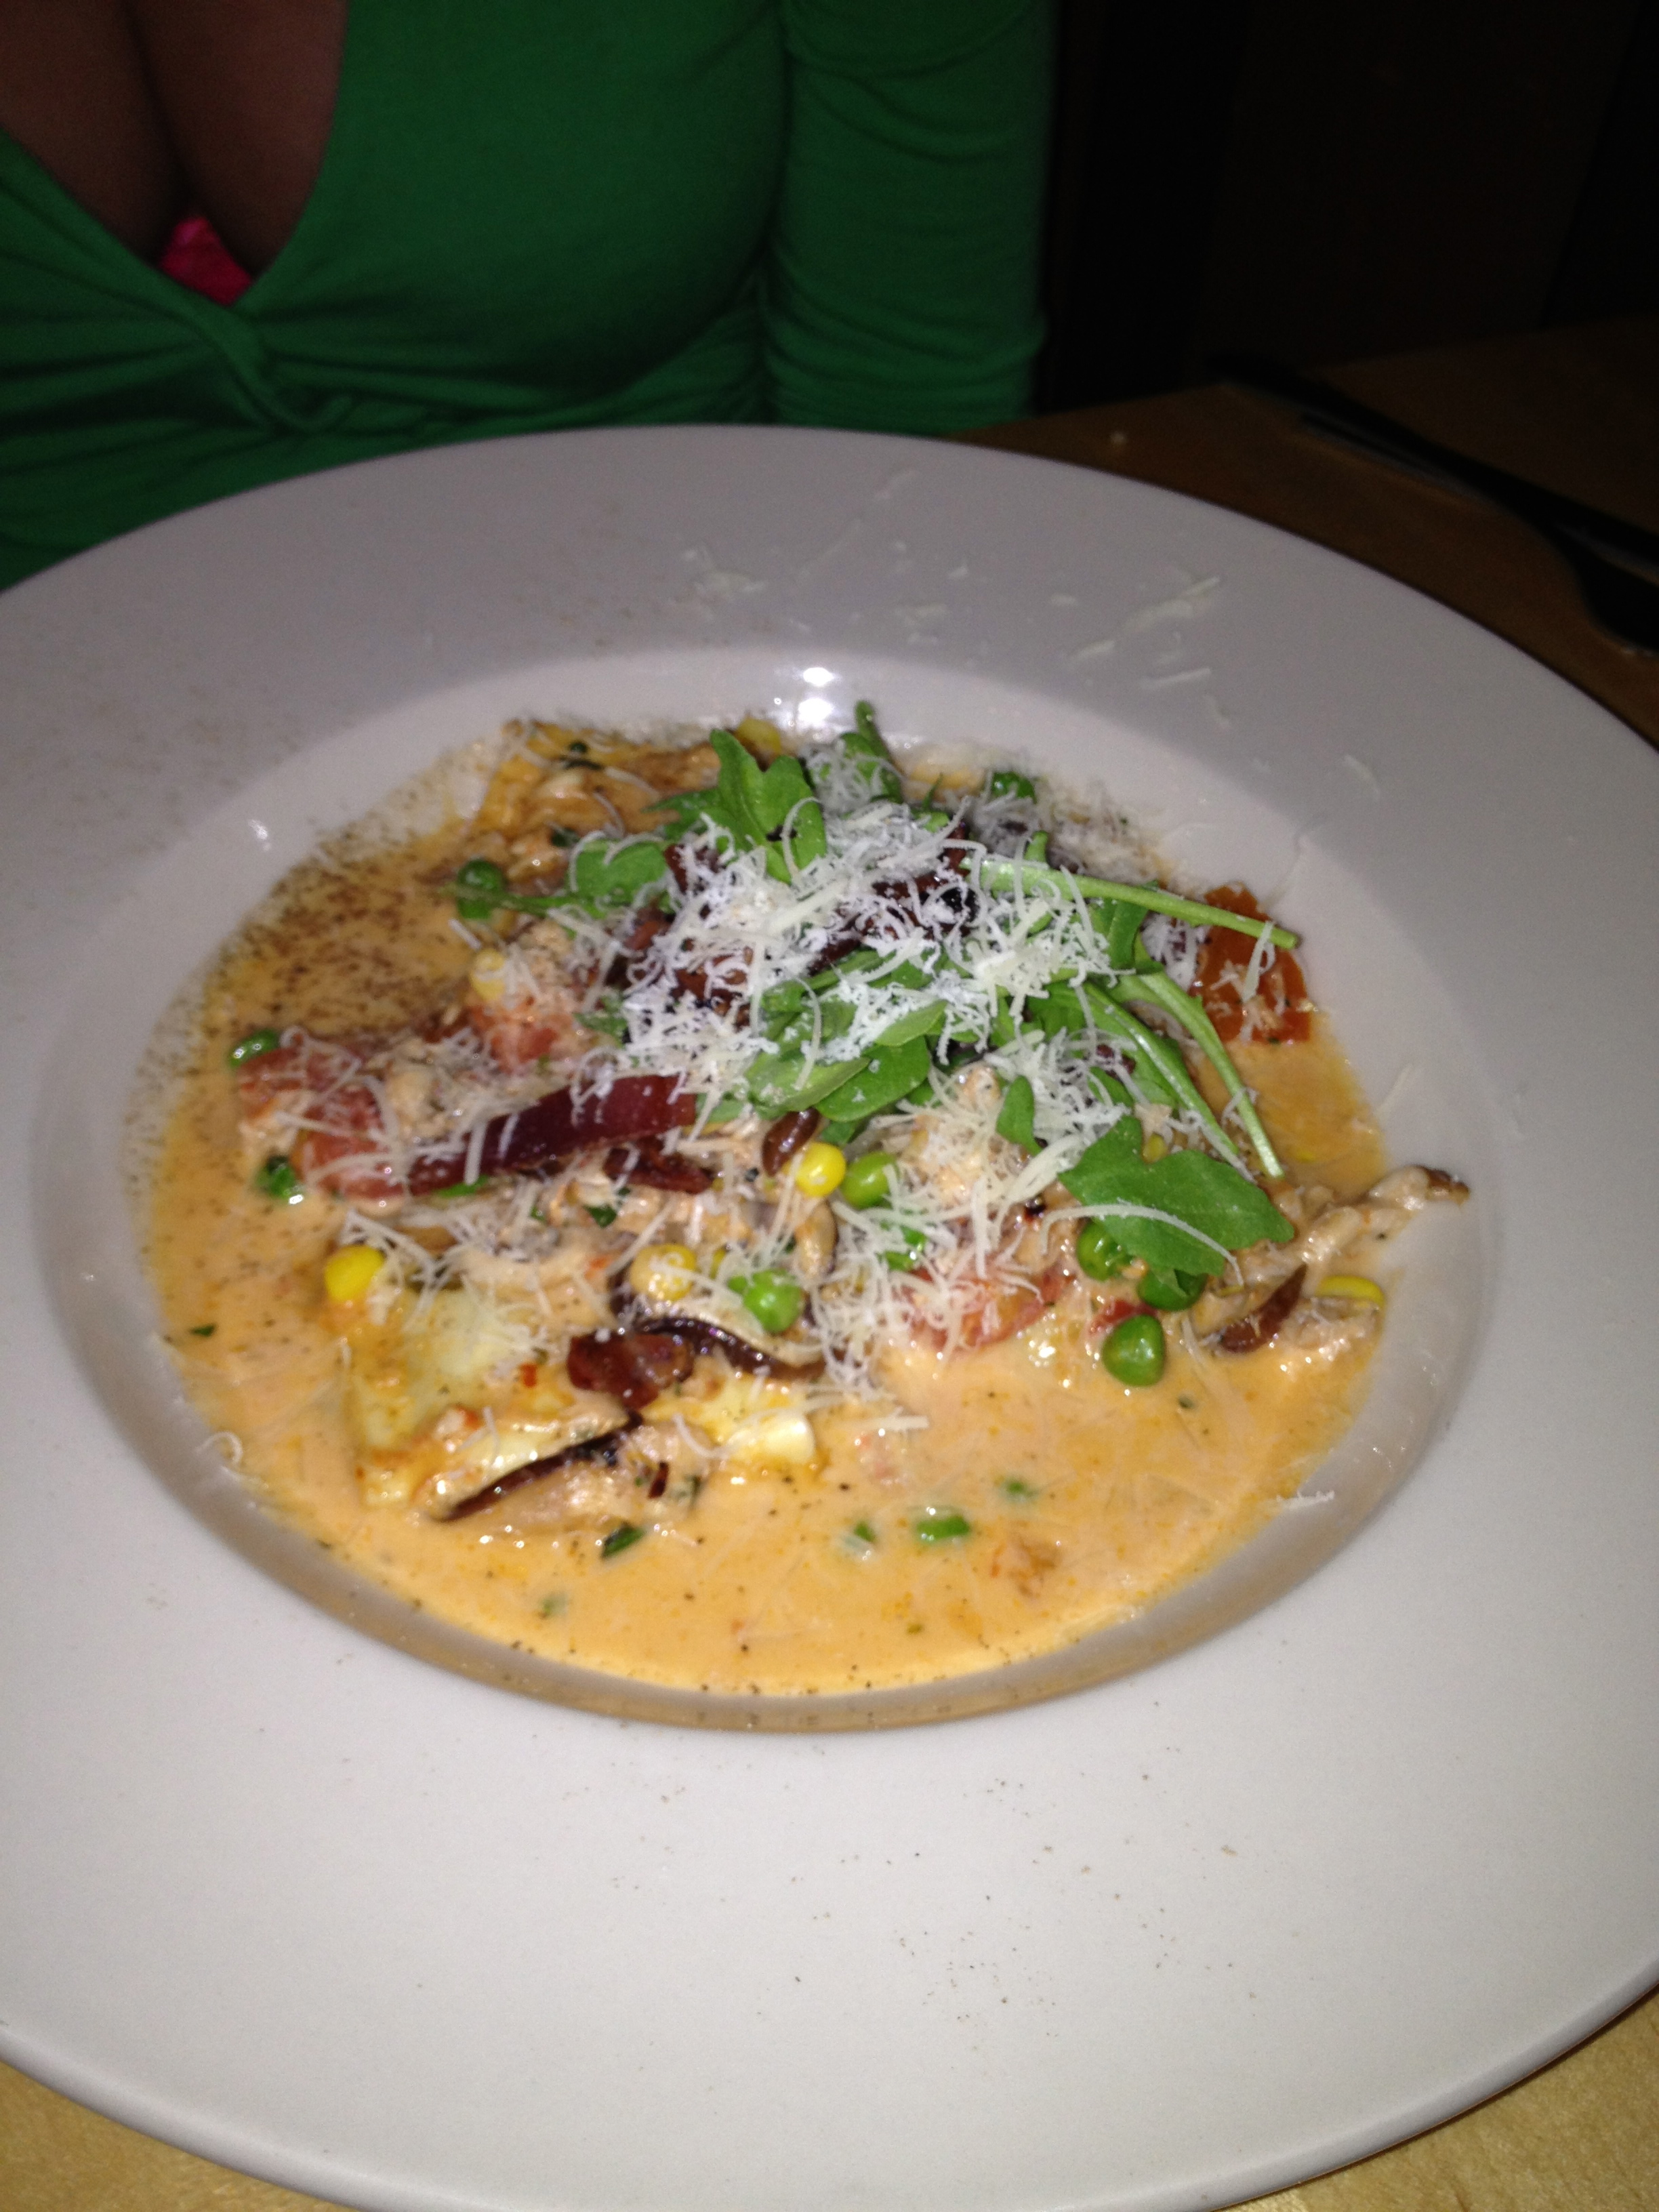 Where did you end up going for Restaurant Week? What is your favorite ...